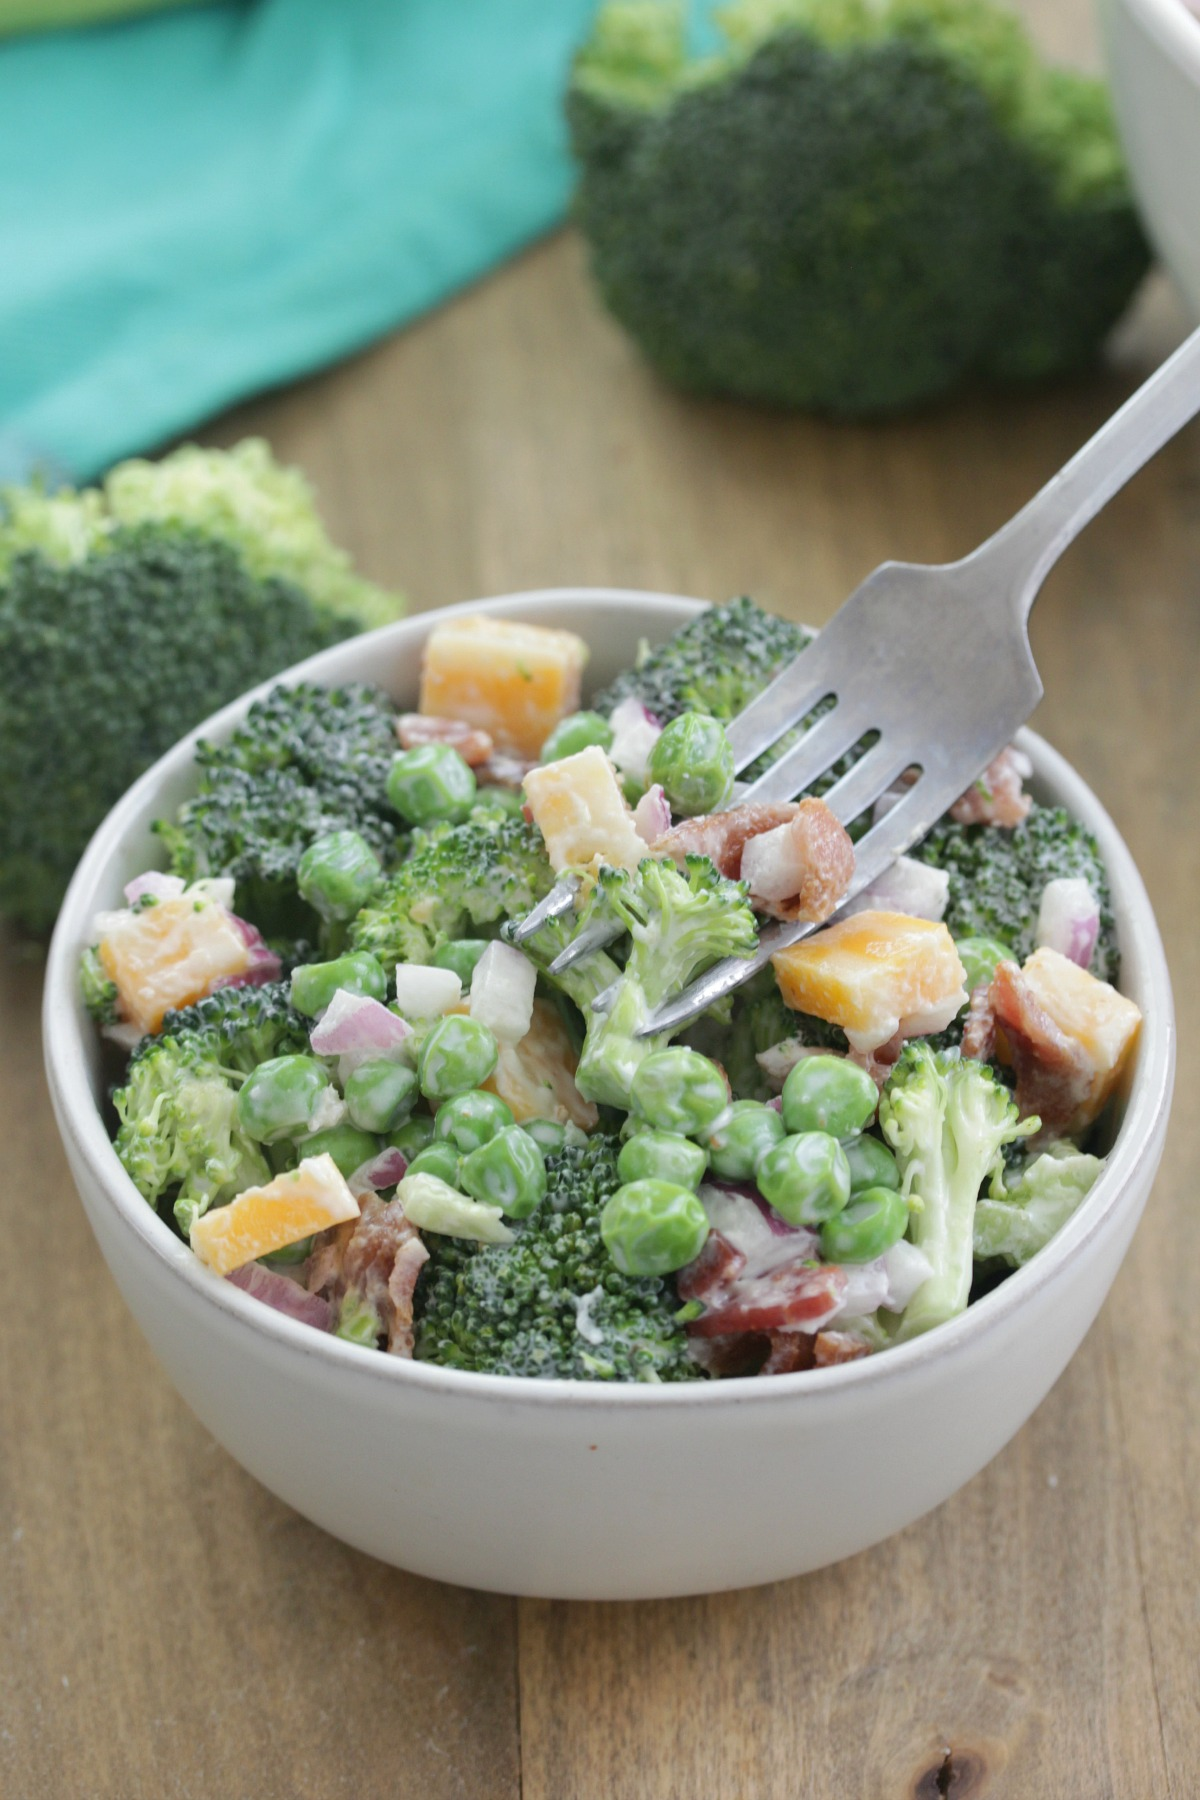 The Best Broccoli Salad - bowl of broccoli salad with bacon, cheese, and peas